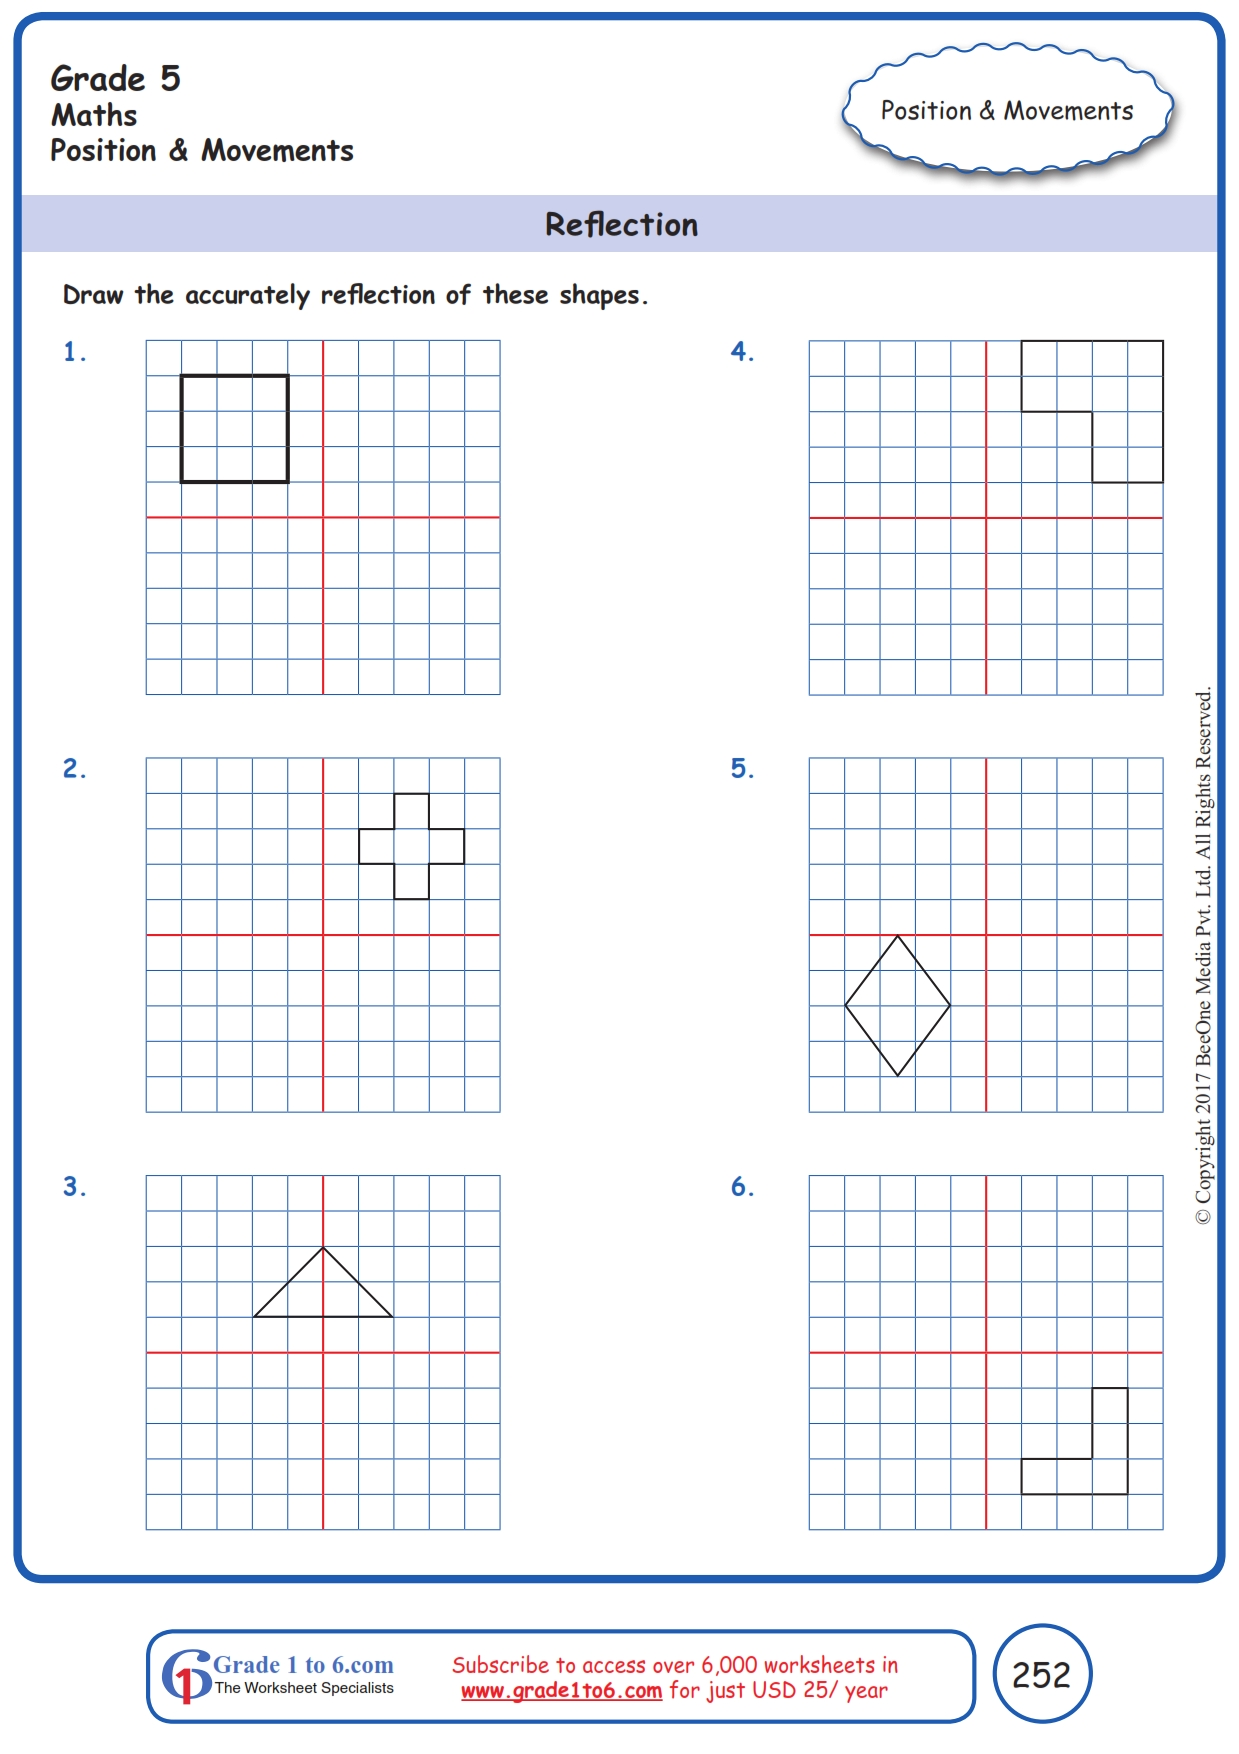 hight resolution of Grade 5 Reflection of Shapes Worksheets www.grade1to6.com